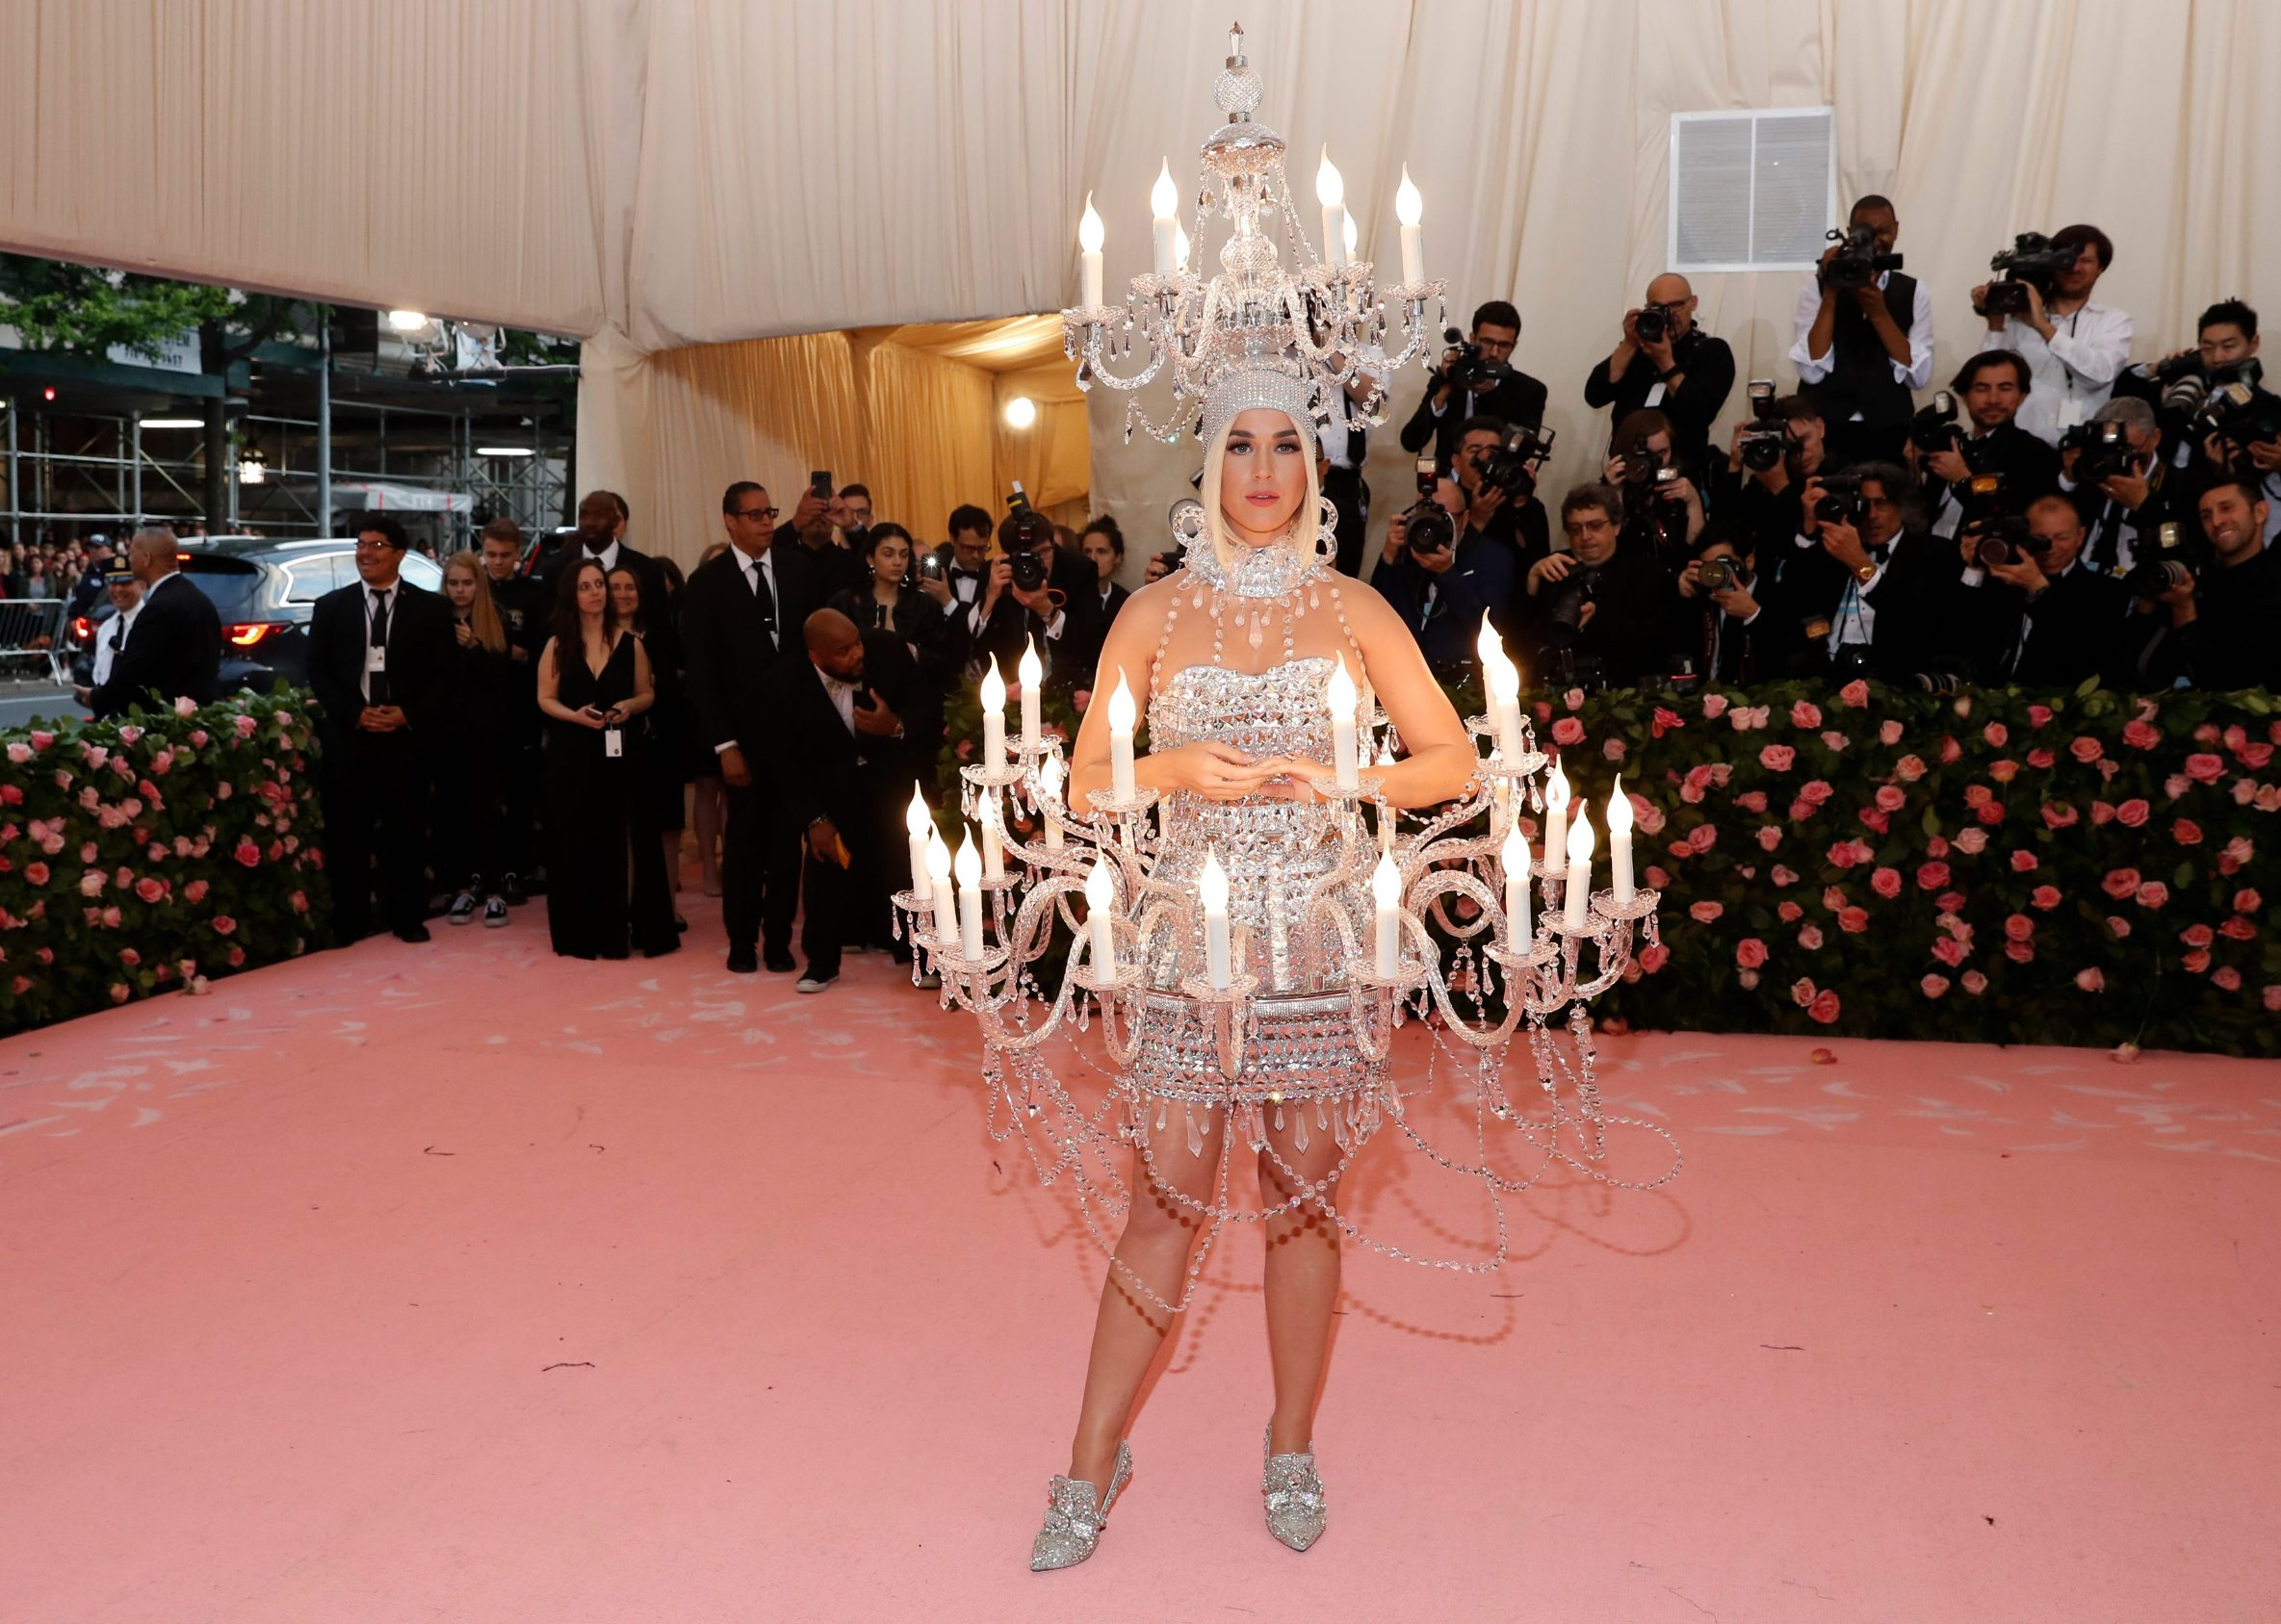 Metropolitan Museum of Art Costume Institute Gala - Met Gala - Camp: Notes on Fashion- Arrivals - New York City, U.S. Äi May 6, 2019 - Katy Perry.  REUTERS/Andrew Kelly